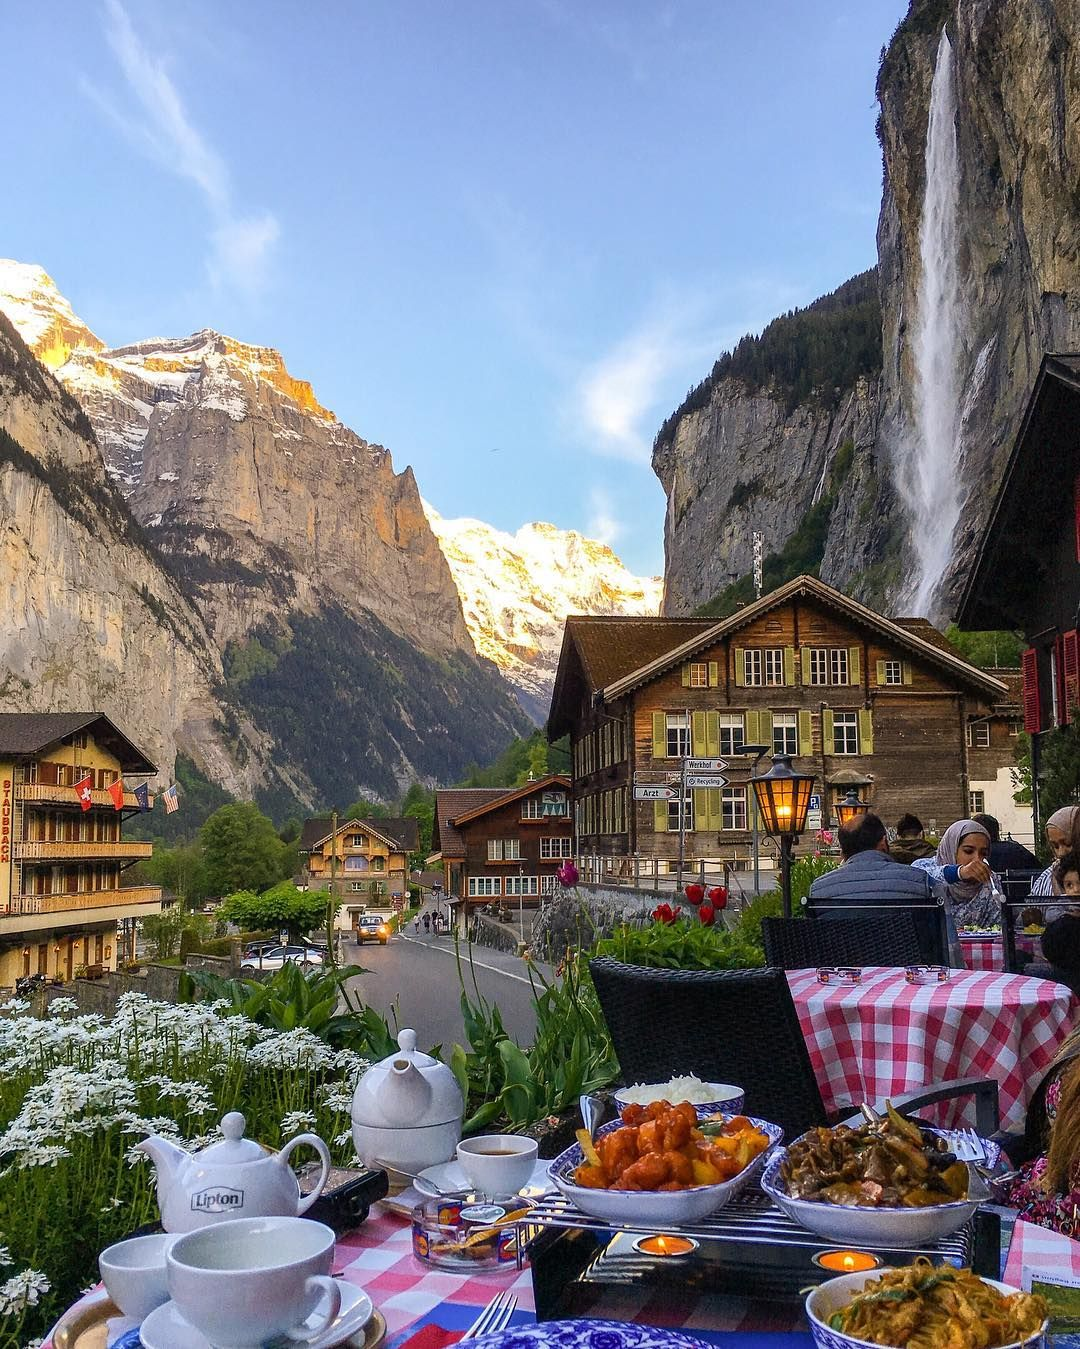 """Hubby and I looked at this photo for a long time, amazed at the beauty of this spot... Now on Pinterest, """"Dinner in Lauterbrunnen"""", Switzerland posted by Reddit user Mark_dawsom via Tumblr. Talk about your world travel! ~~ Houston Foodlovers Book Club"""